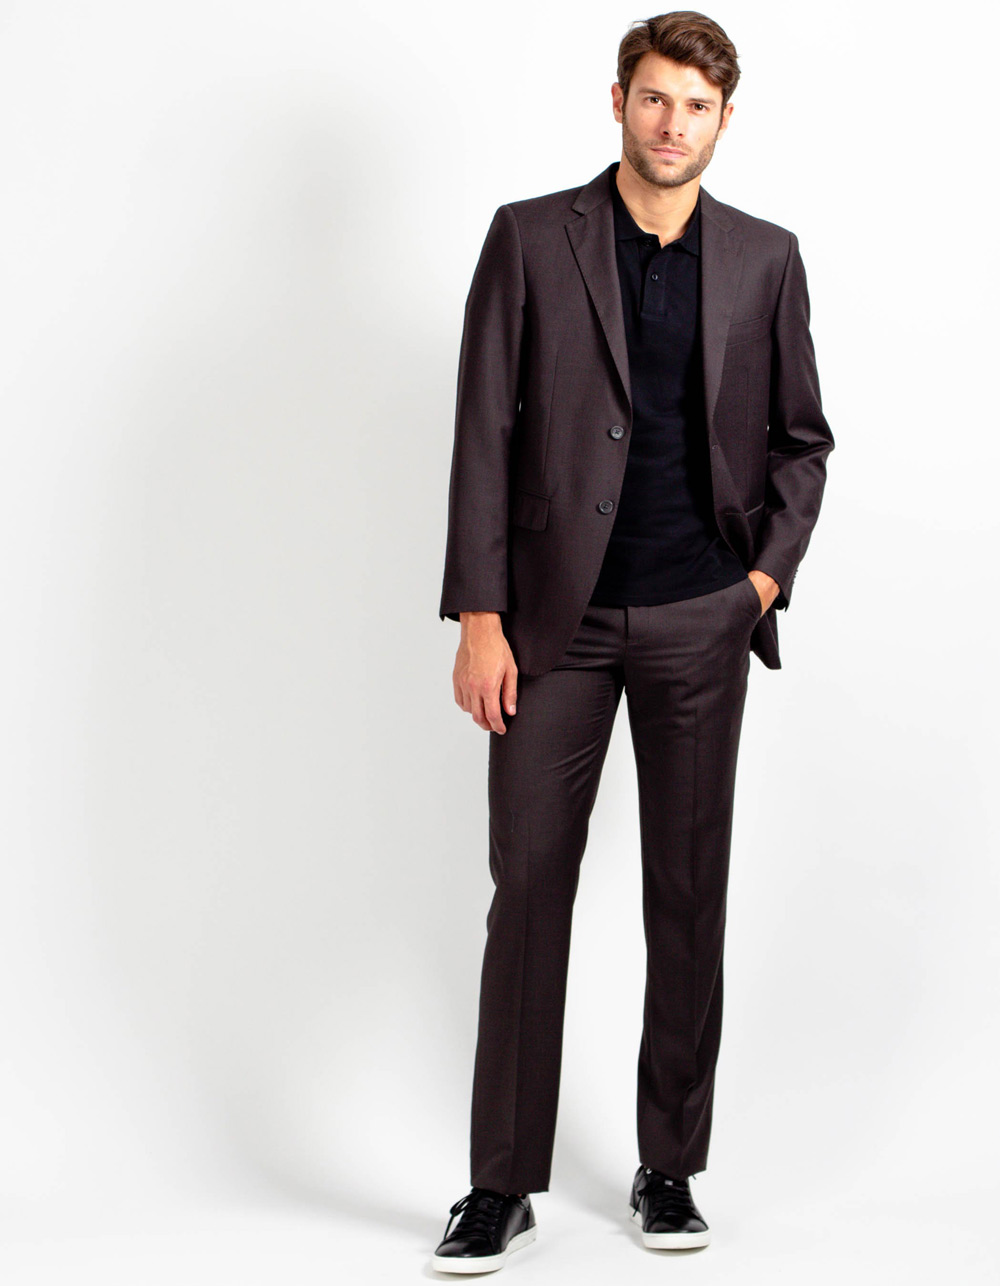 Brown plain suit